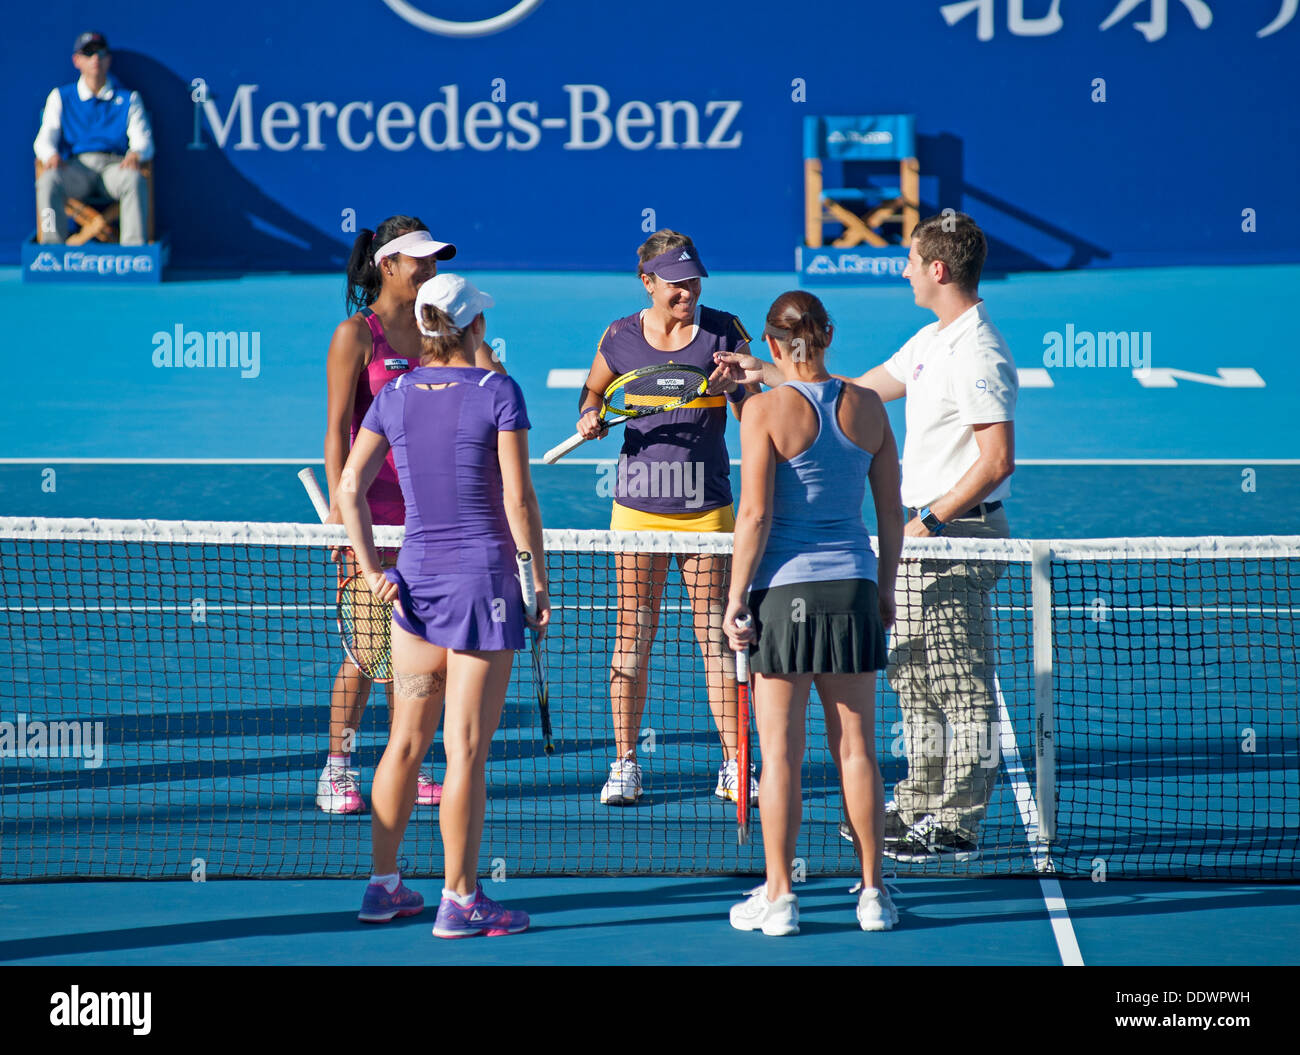 Coin toss in match between Hsieh and Medina Garrigues (far) and Jans-Ignacik and Dellacqua (near) at China Open - Stock Image